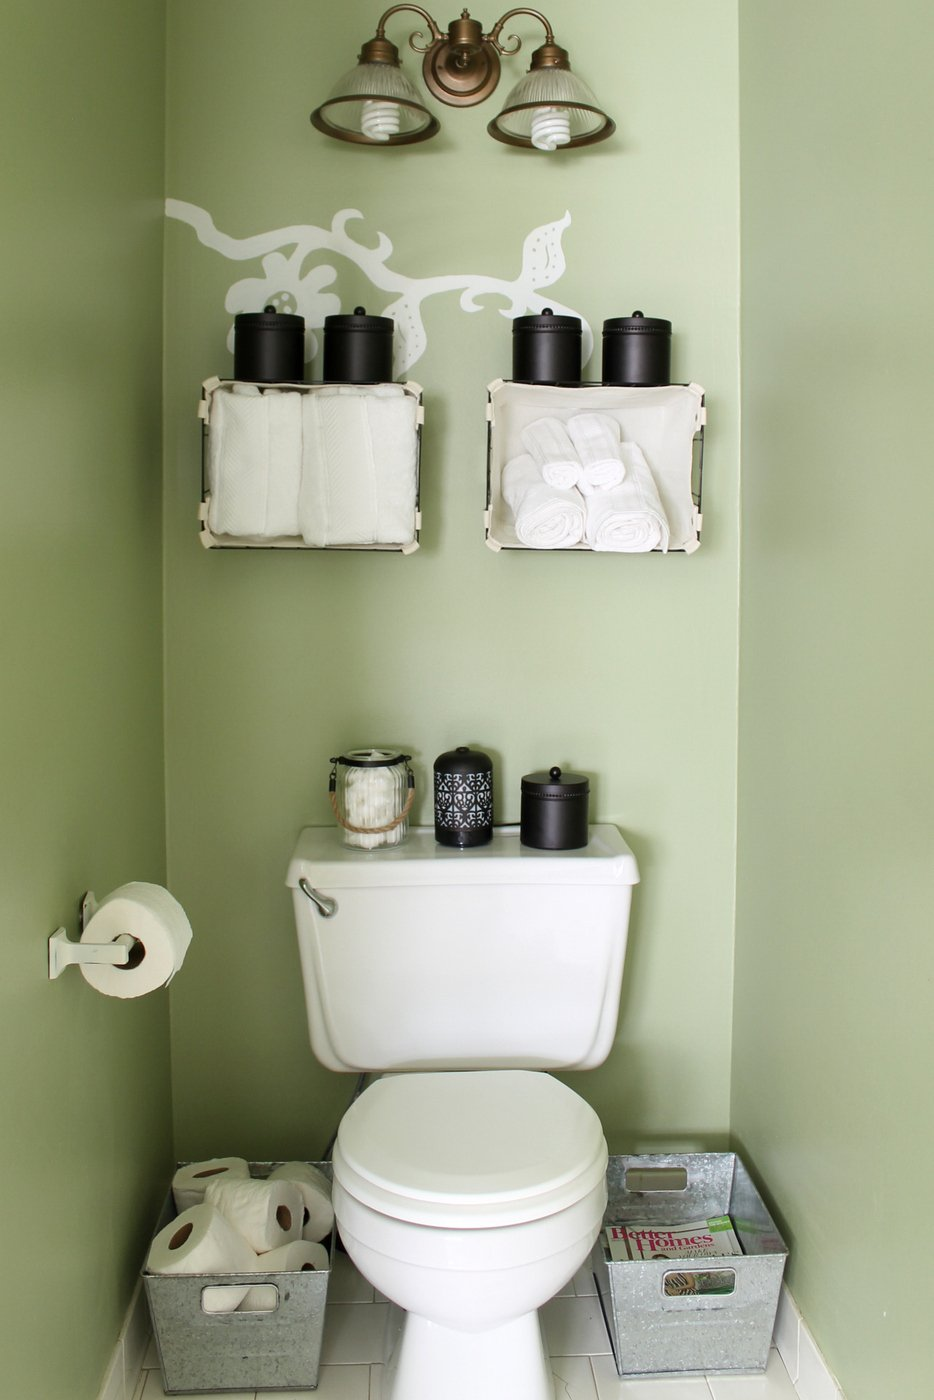 Small bathroom organization ideas the country chic cottage How to organize bathroom